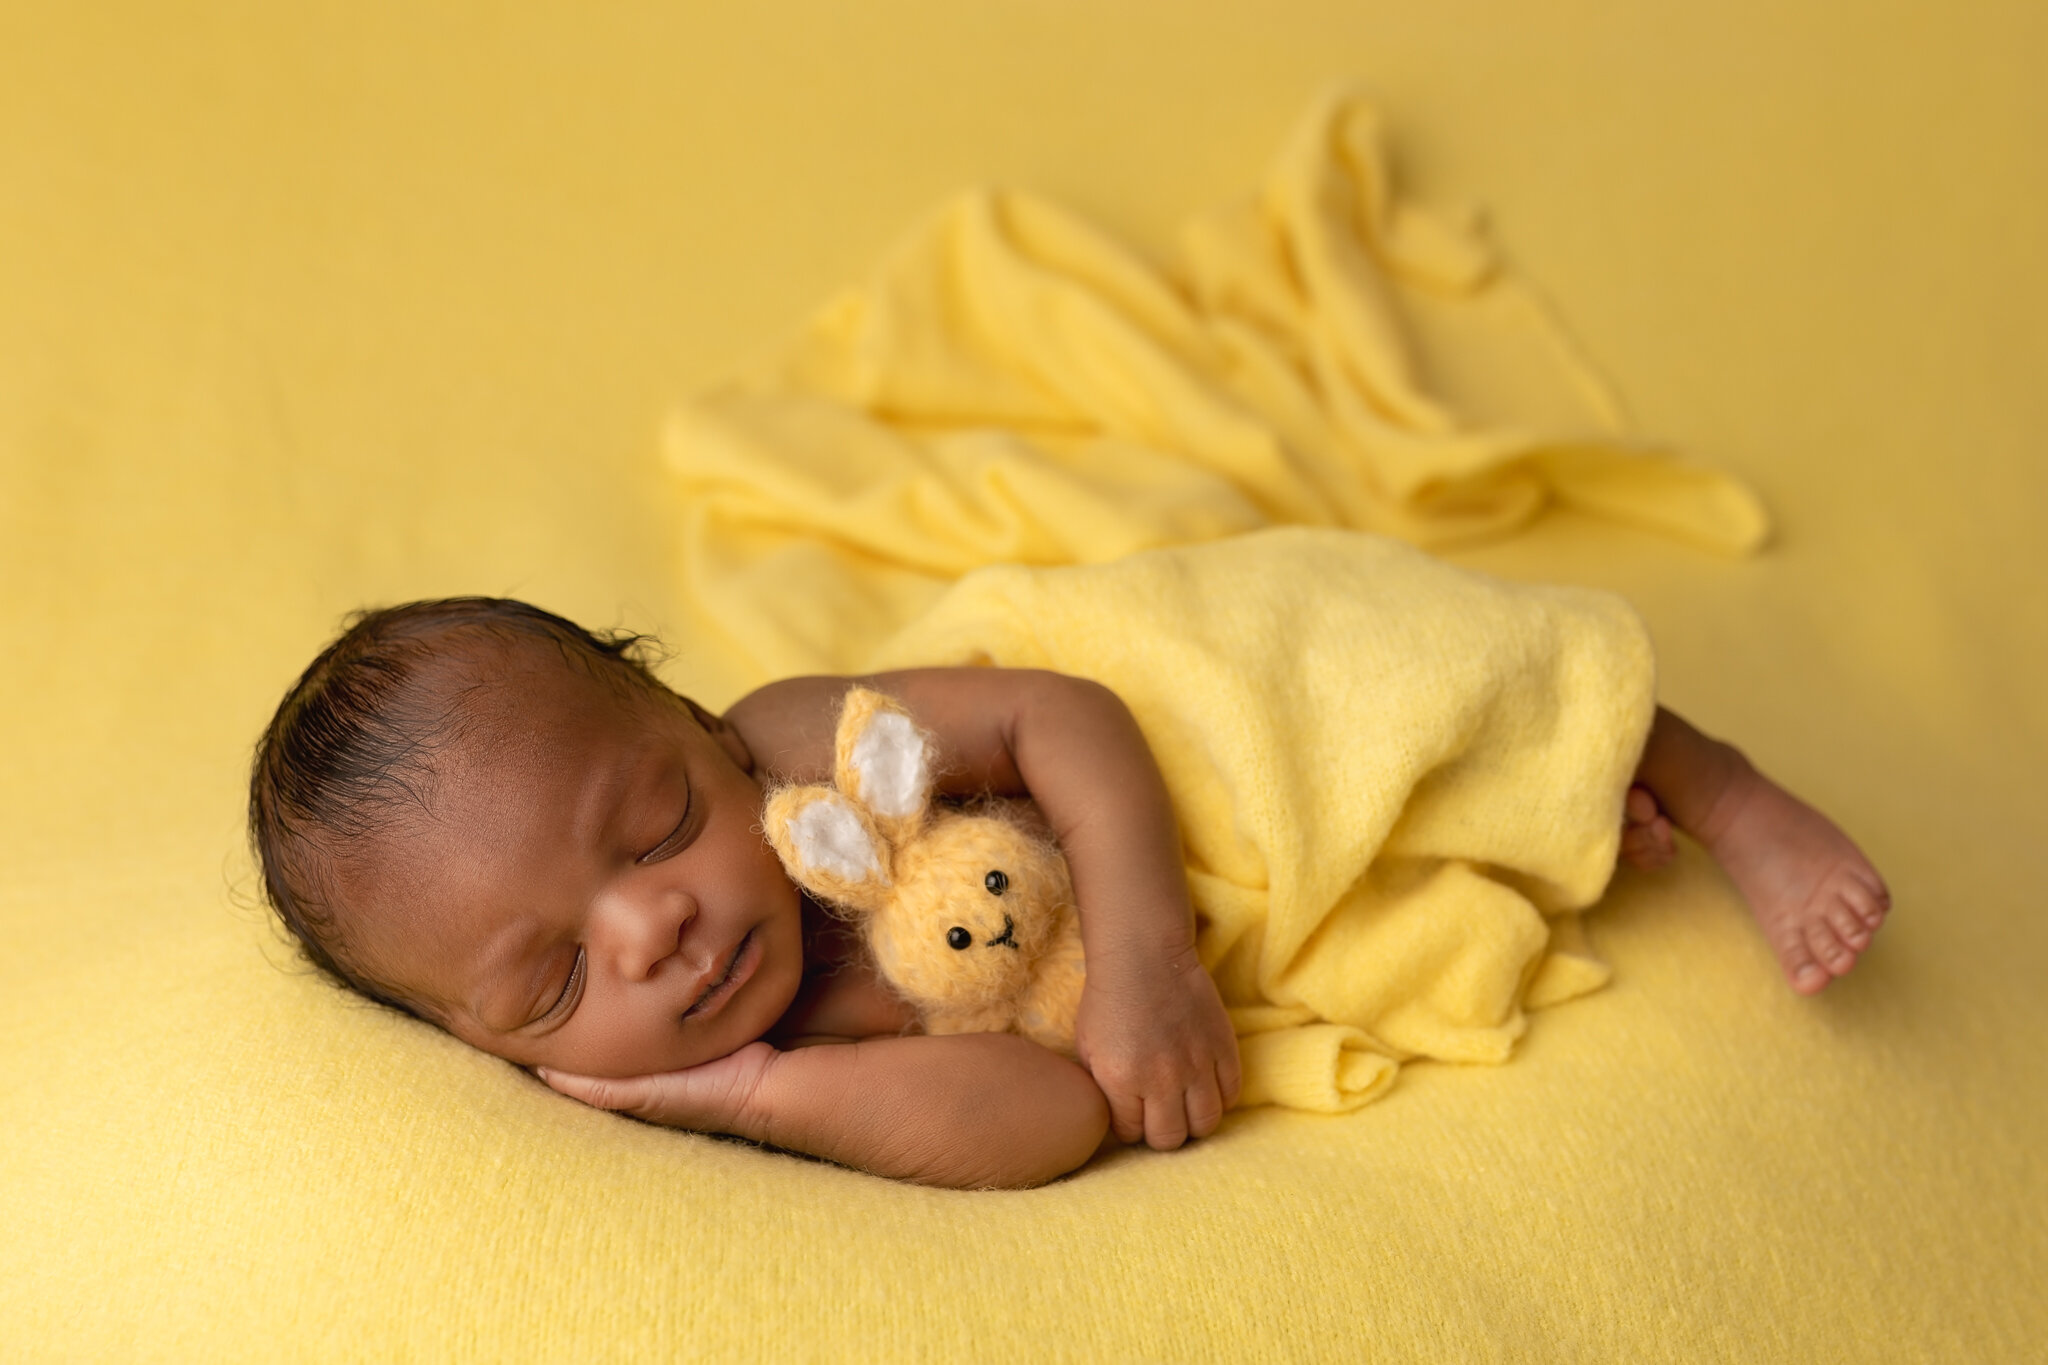 Professional newborn photography Leeds, York, Bradford, Wakefield, Harrogate, Huddersfield: baby boy sleeping on a yellow blanket during newborn session in Leeds, West Yorkshire